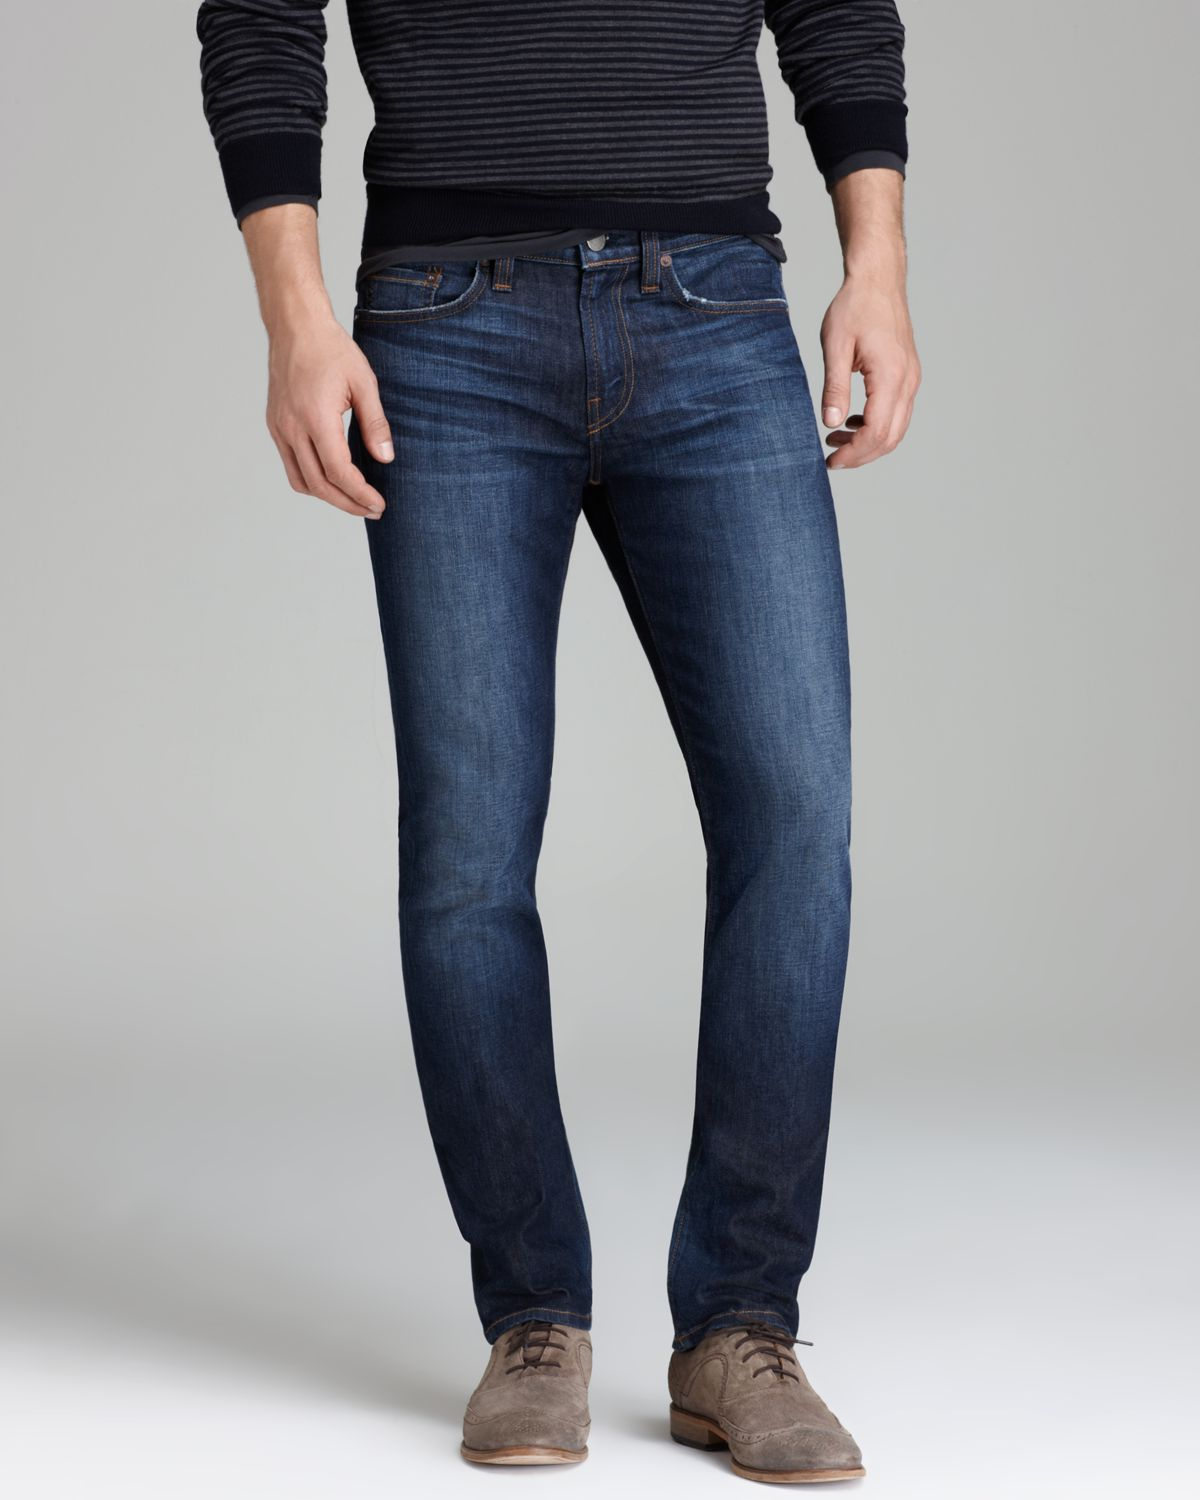 Fit Jeans For Men